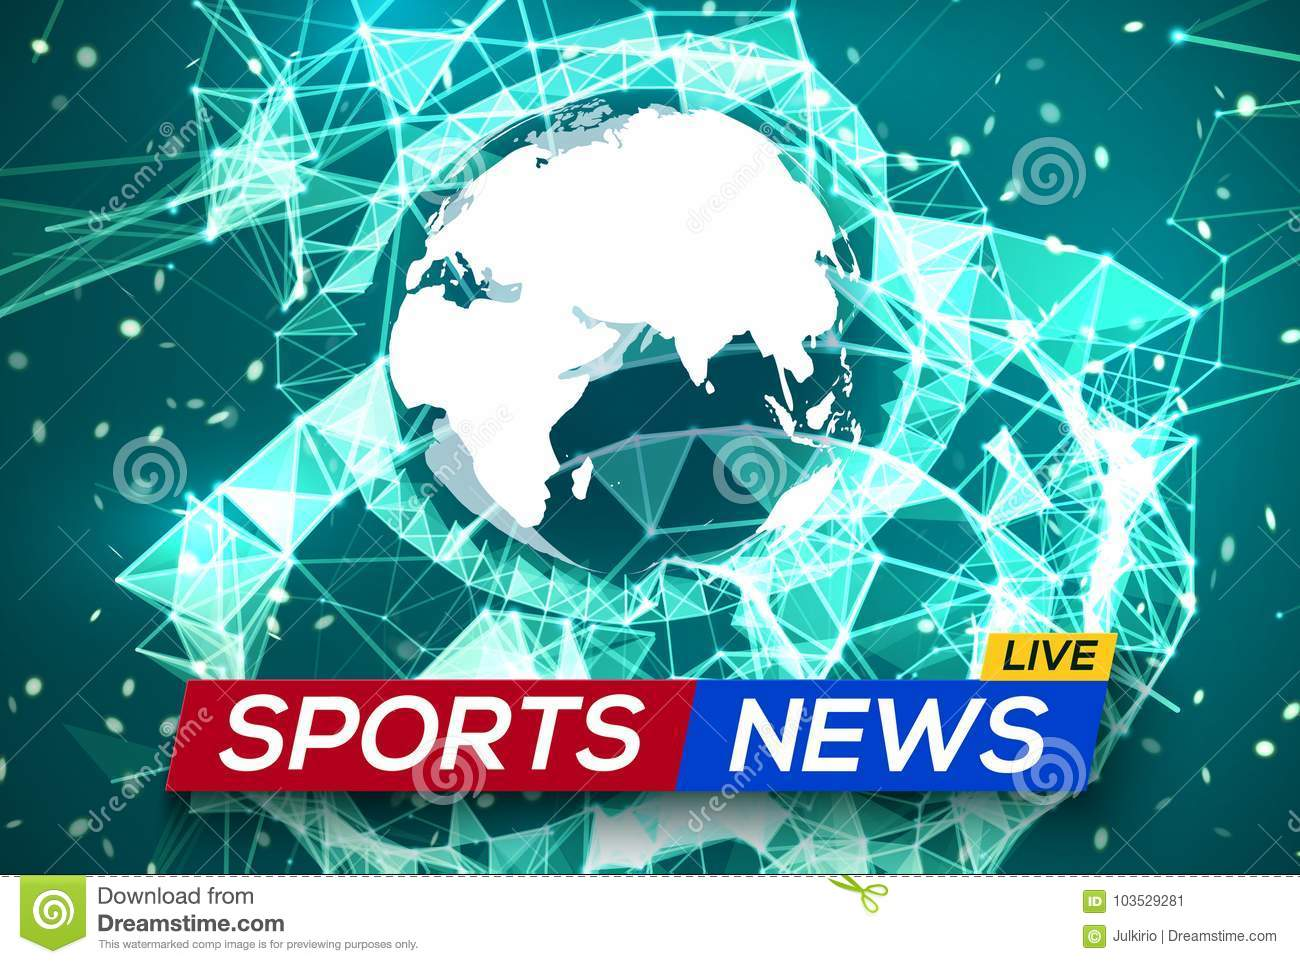 Sports News Live With World Map Africa And Europe Stock Vector